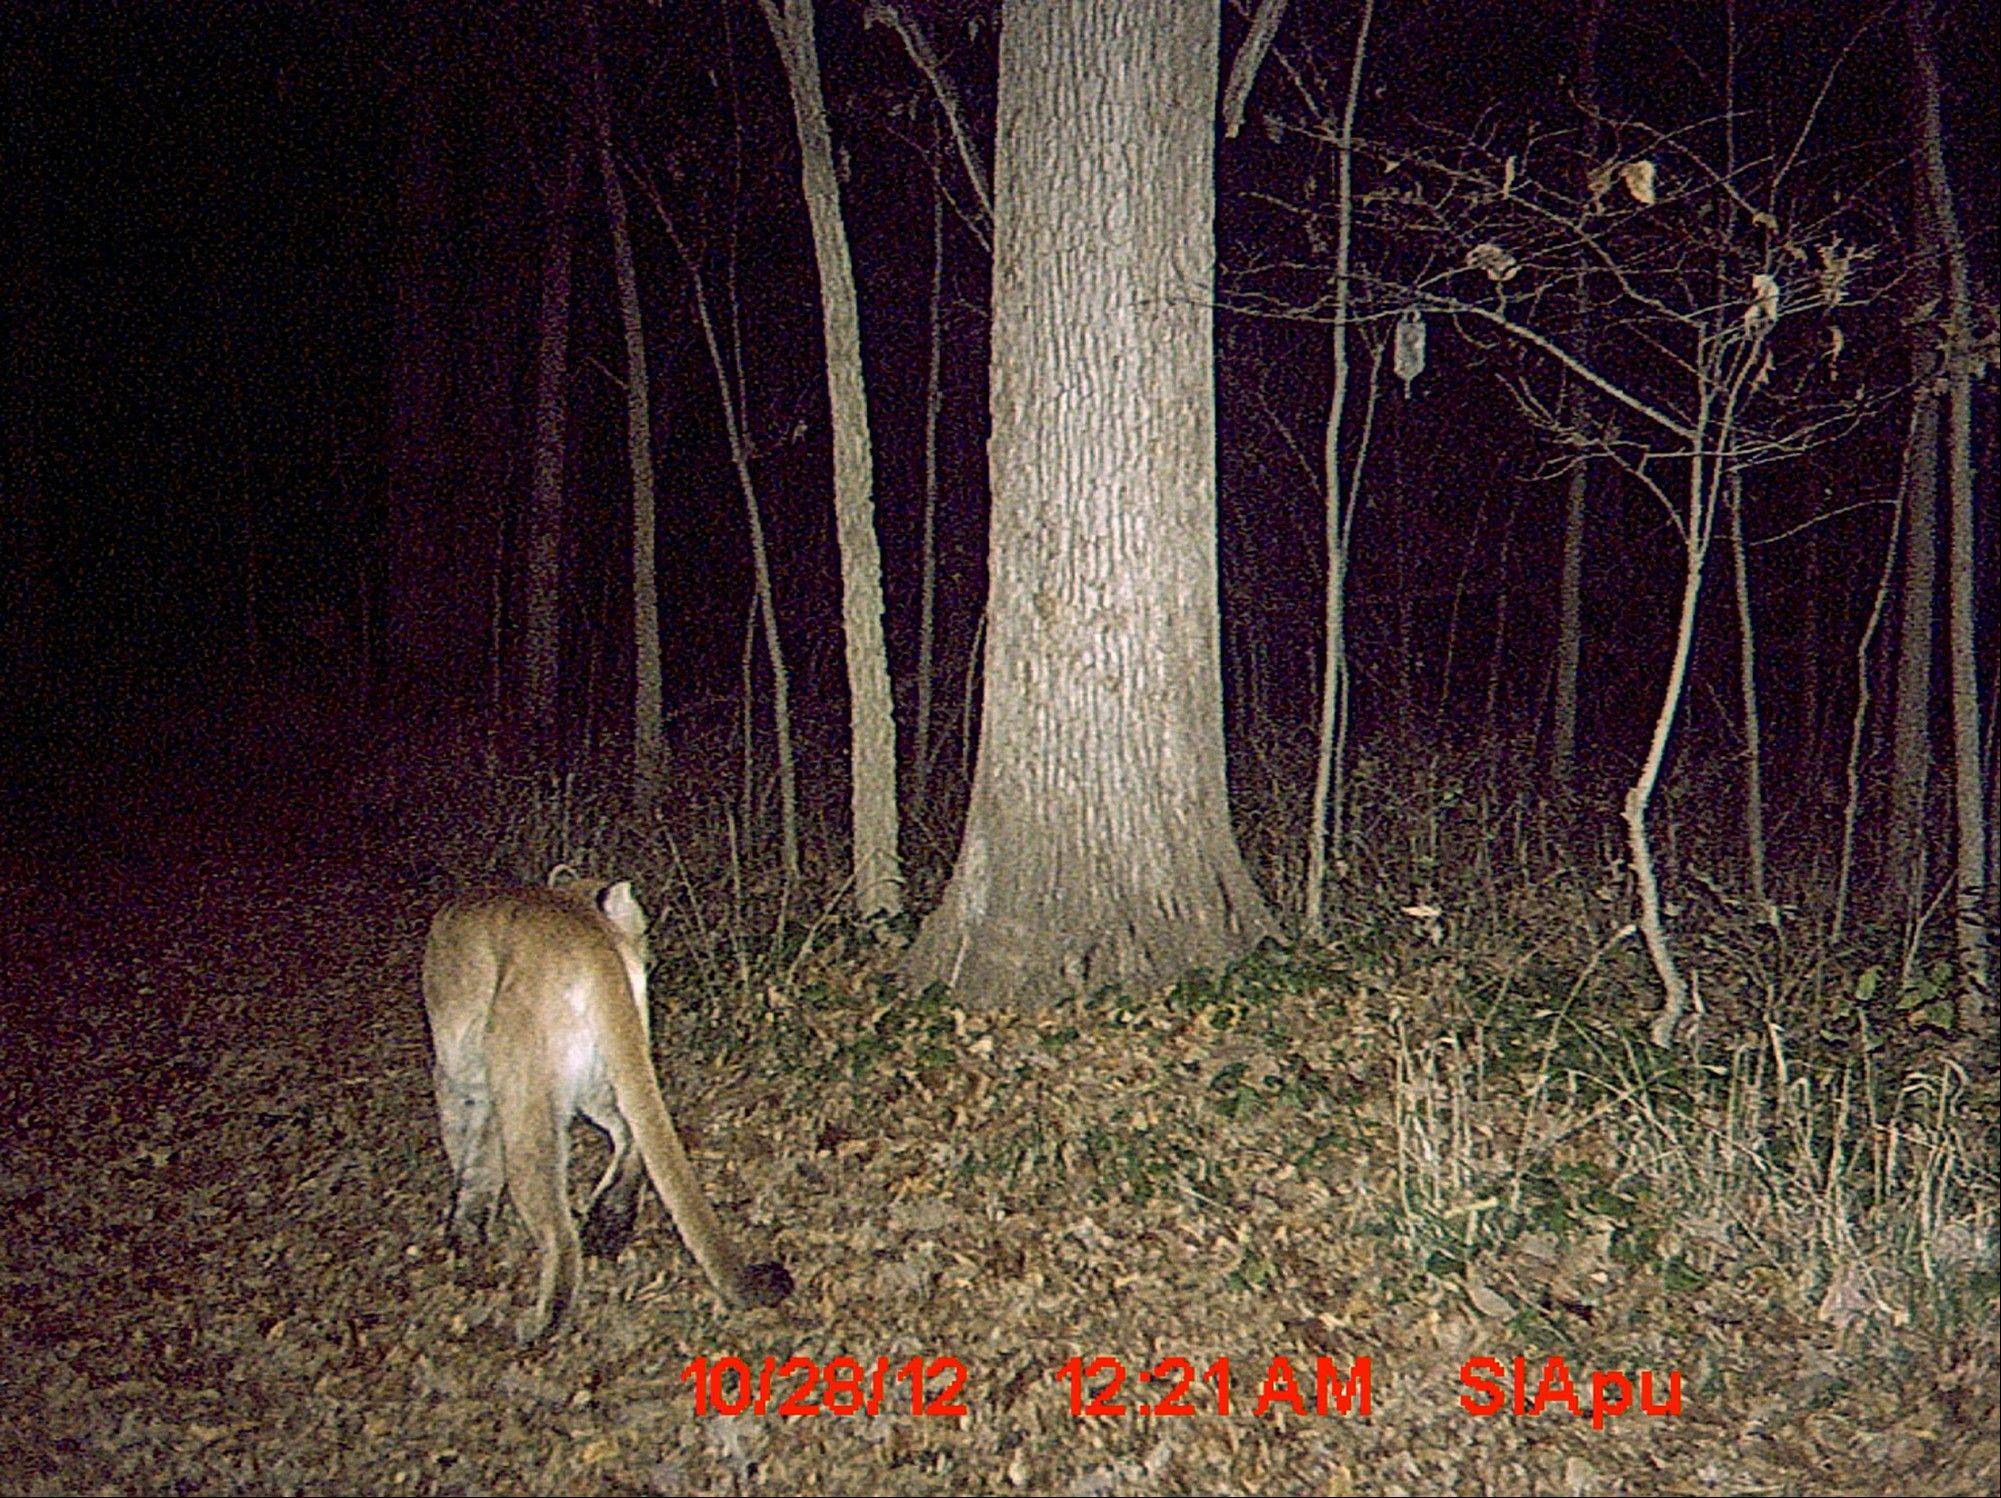 In this Sunday, Oct. 28, 2012 photo provided by Mark Cobb via The State Journal-Register, a photo of a cougar caught on a motion-sensitive trail camera is seen near Jacksonville, Ill. Cobb, of Sherman, Ill., captured the image in Morgan County and the Illinois Department of Natural Resources confirmed the authenticity of the photo Monday afternoon. The State Journal-Register reports that it's only the fourth confirmed sighting of a cougar since the cats were driven from Illinois in the 1870s.